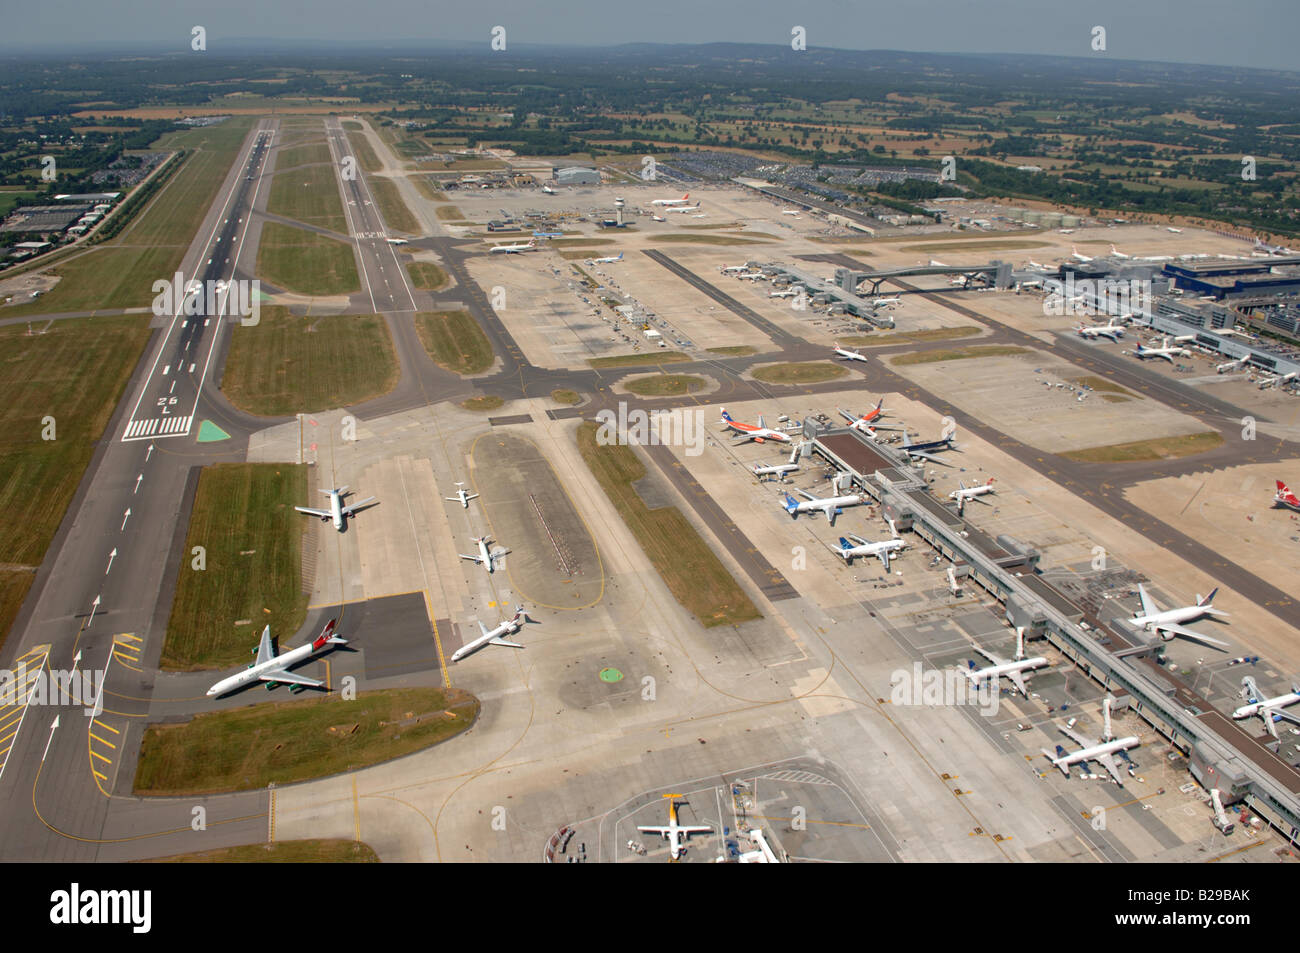 Gatwick Airport Date 12 03 2008 Ref ZB648 111149 0034 COMPULSORY CREDIT World Pictures Photoshot - Stock Image